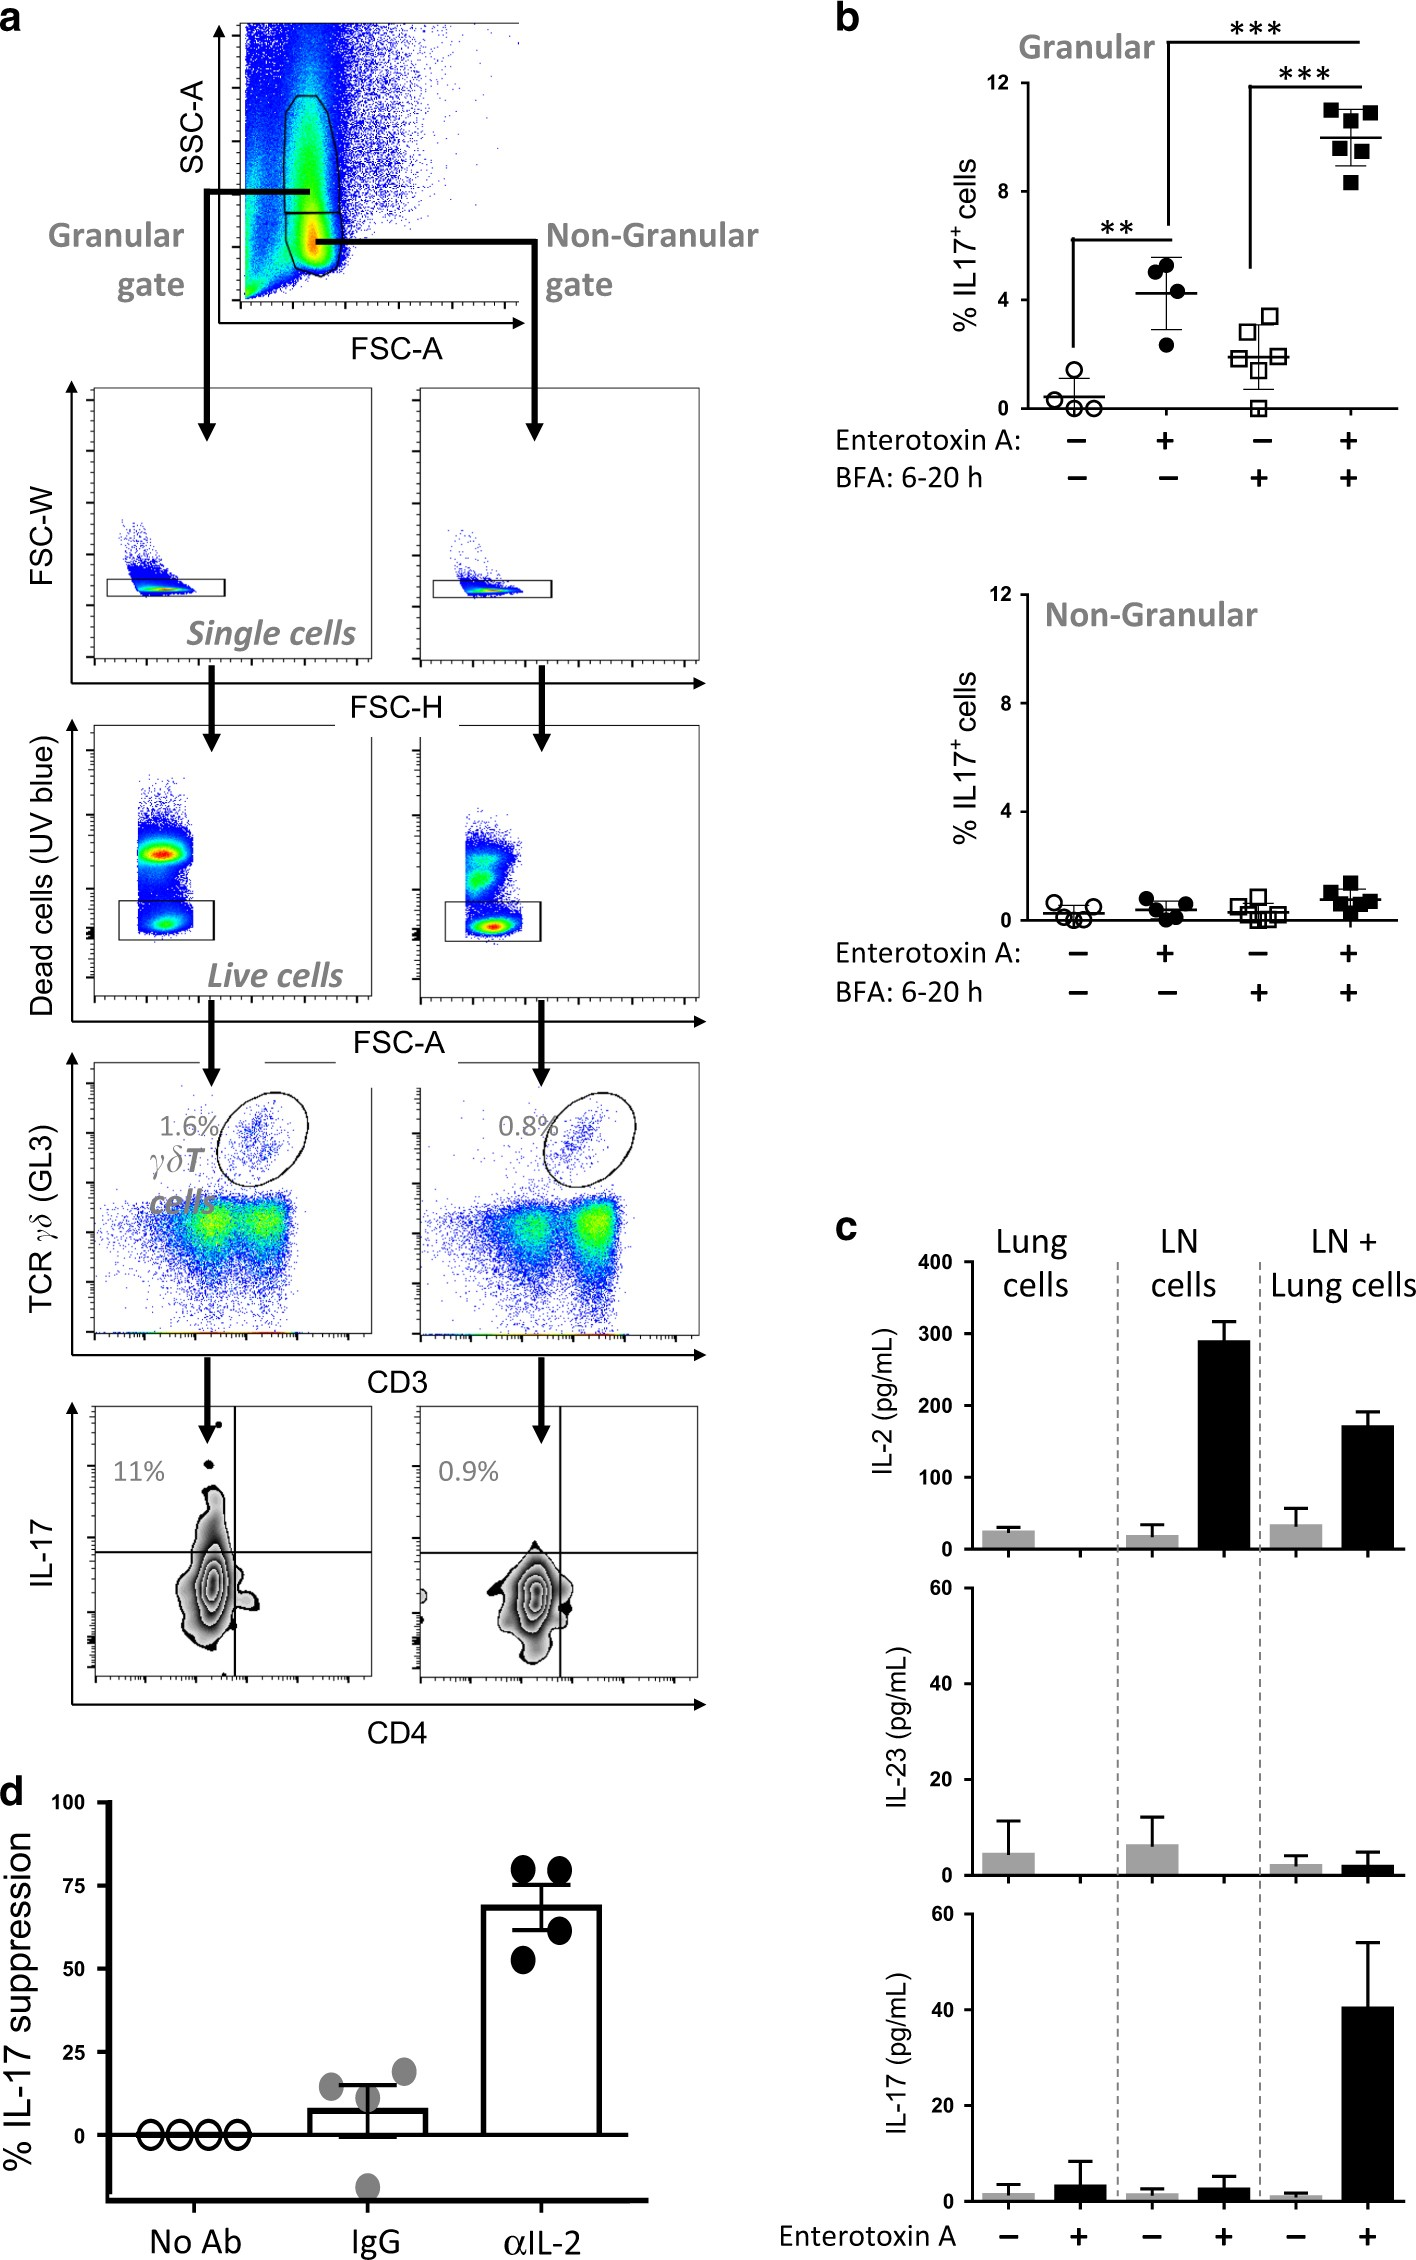 T Cell Directed Il 17 Production By Lung Granular Cells Is Wiring Diagram For Signal Stat 700 Coordinated A Novel 2 And 1 Circuit Mucosal Immunology